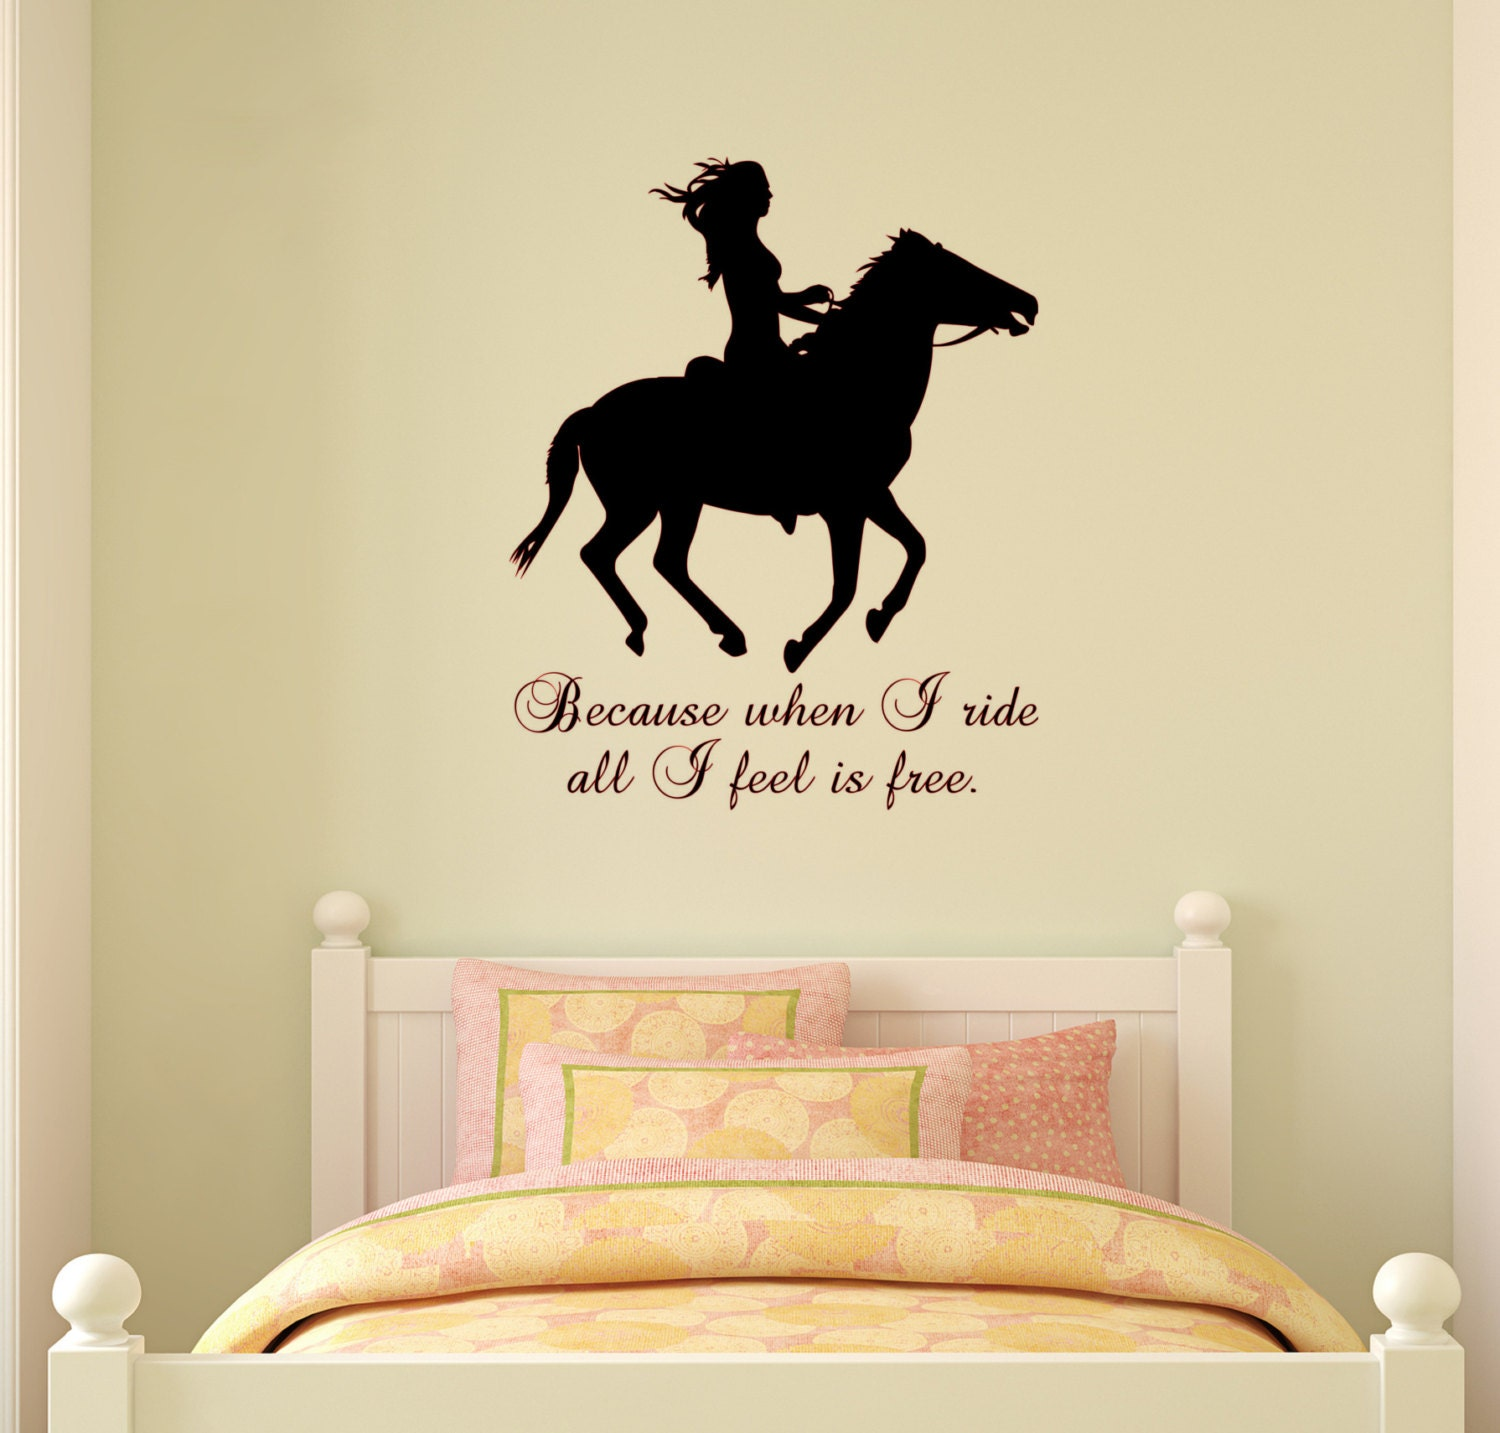 Horse wall decal Horse quote sticker Wall words Girls Teen